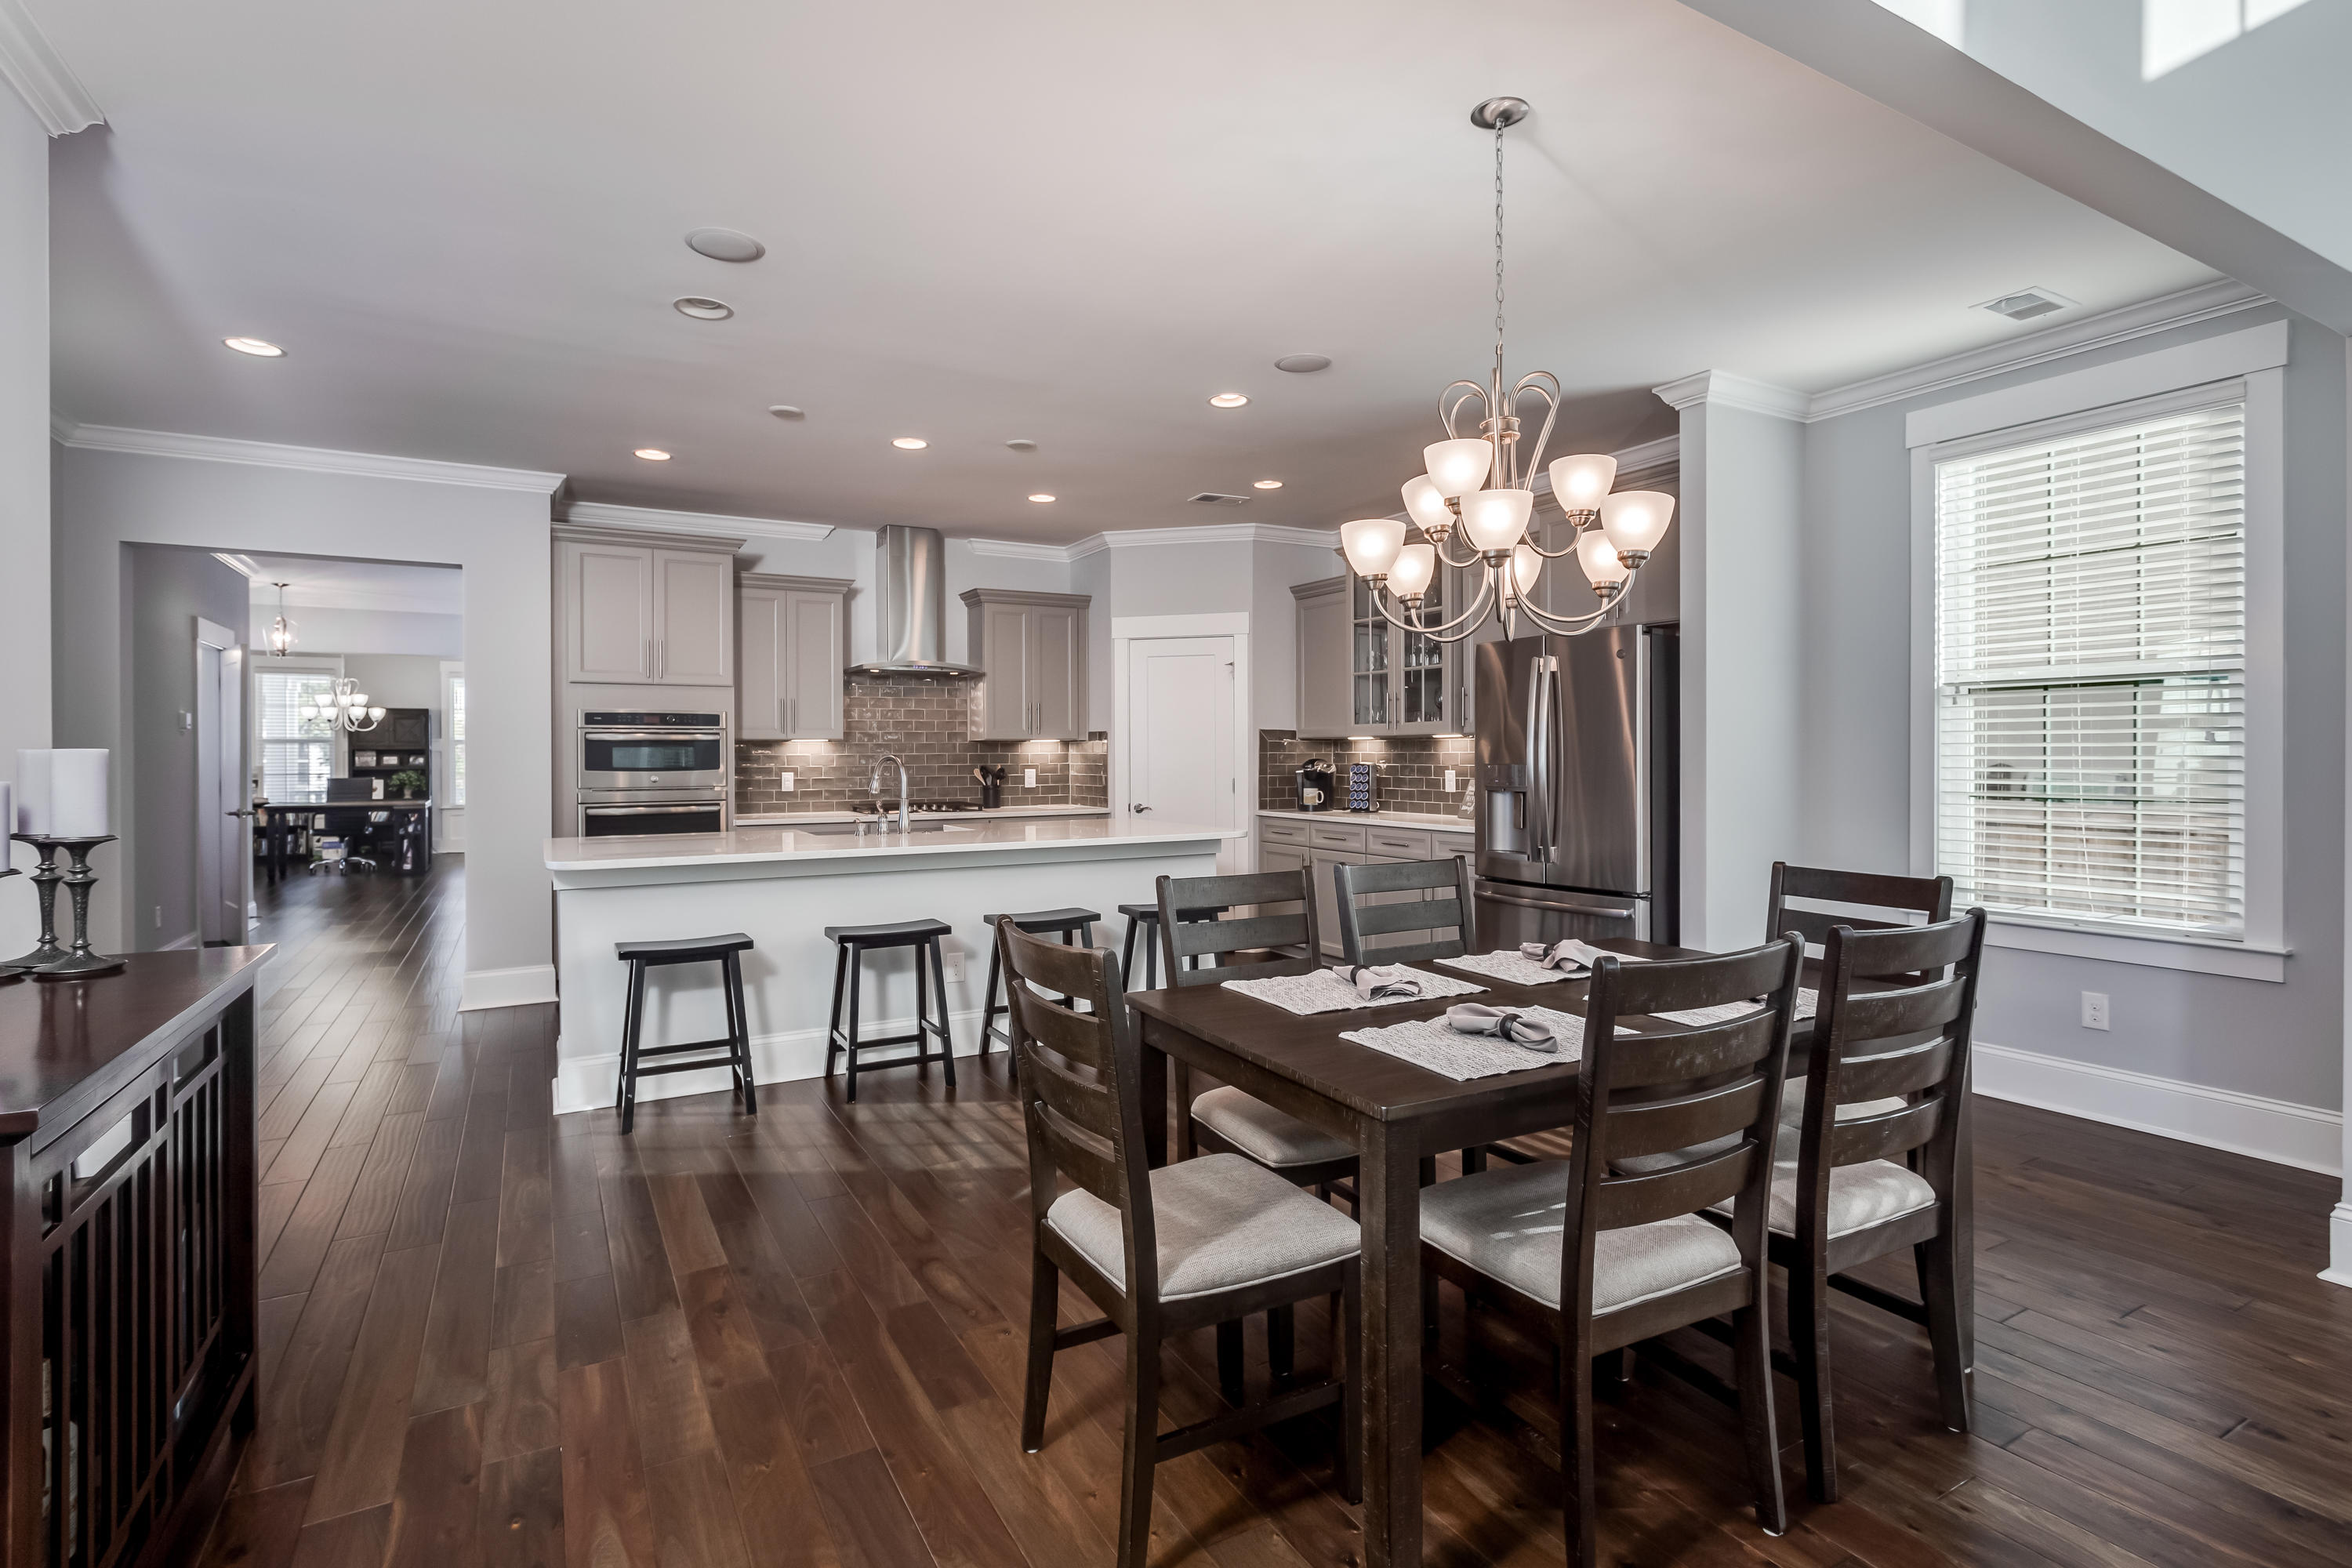 The Village at Stiles Point Homes For Sale - 849 Shutes Folly, Charleston, SC - 13